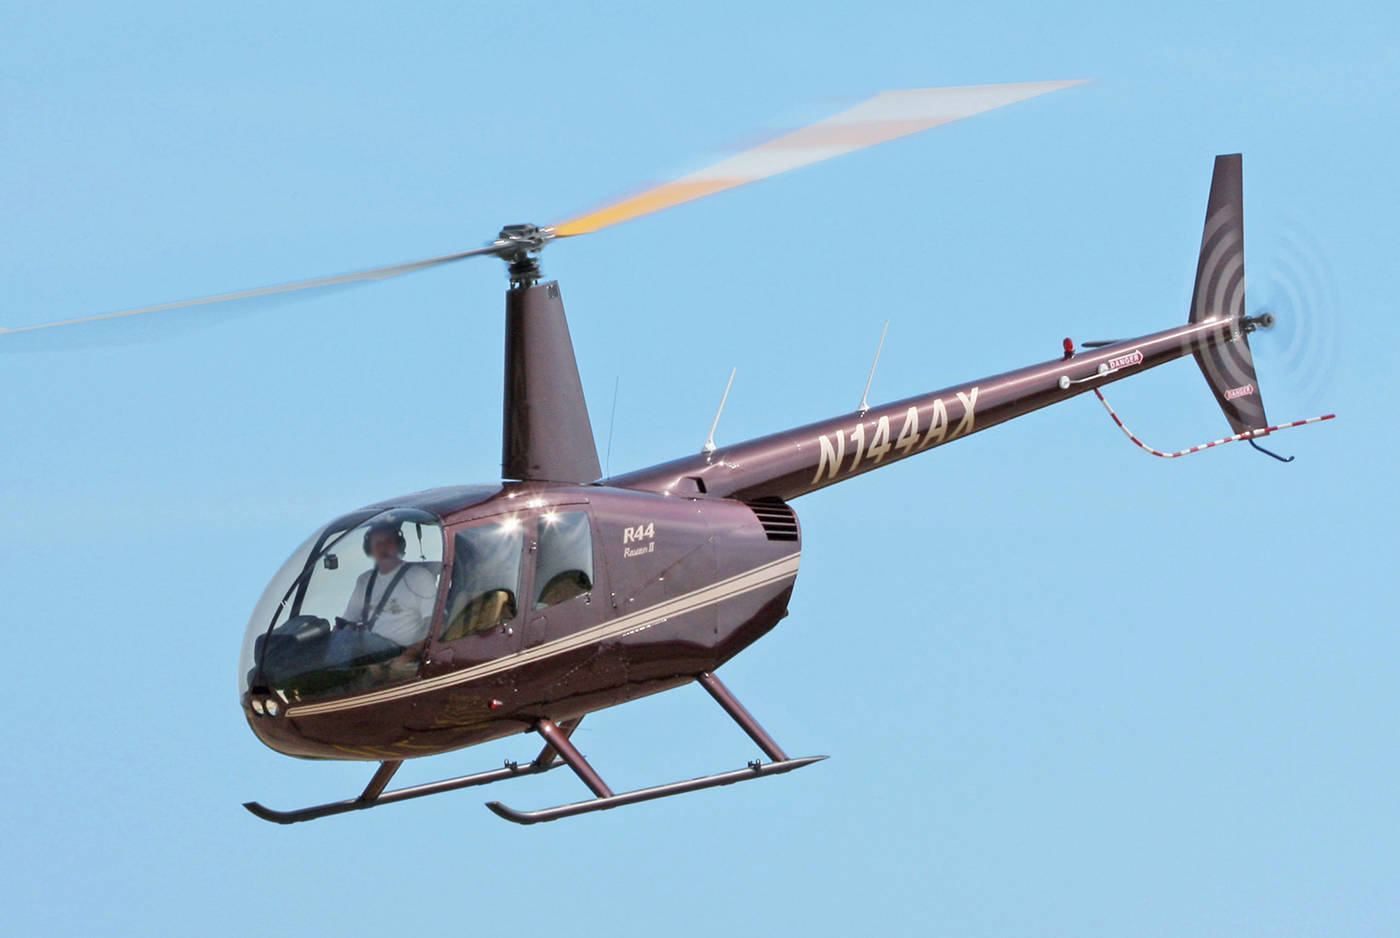 A Robinson R44 helicopter. (D. Miller - Flickr)